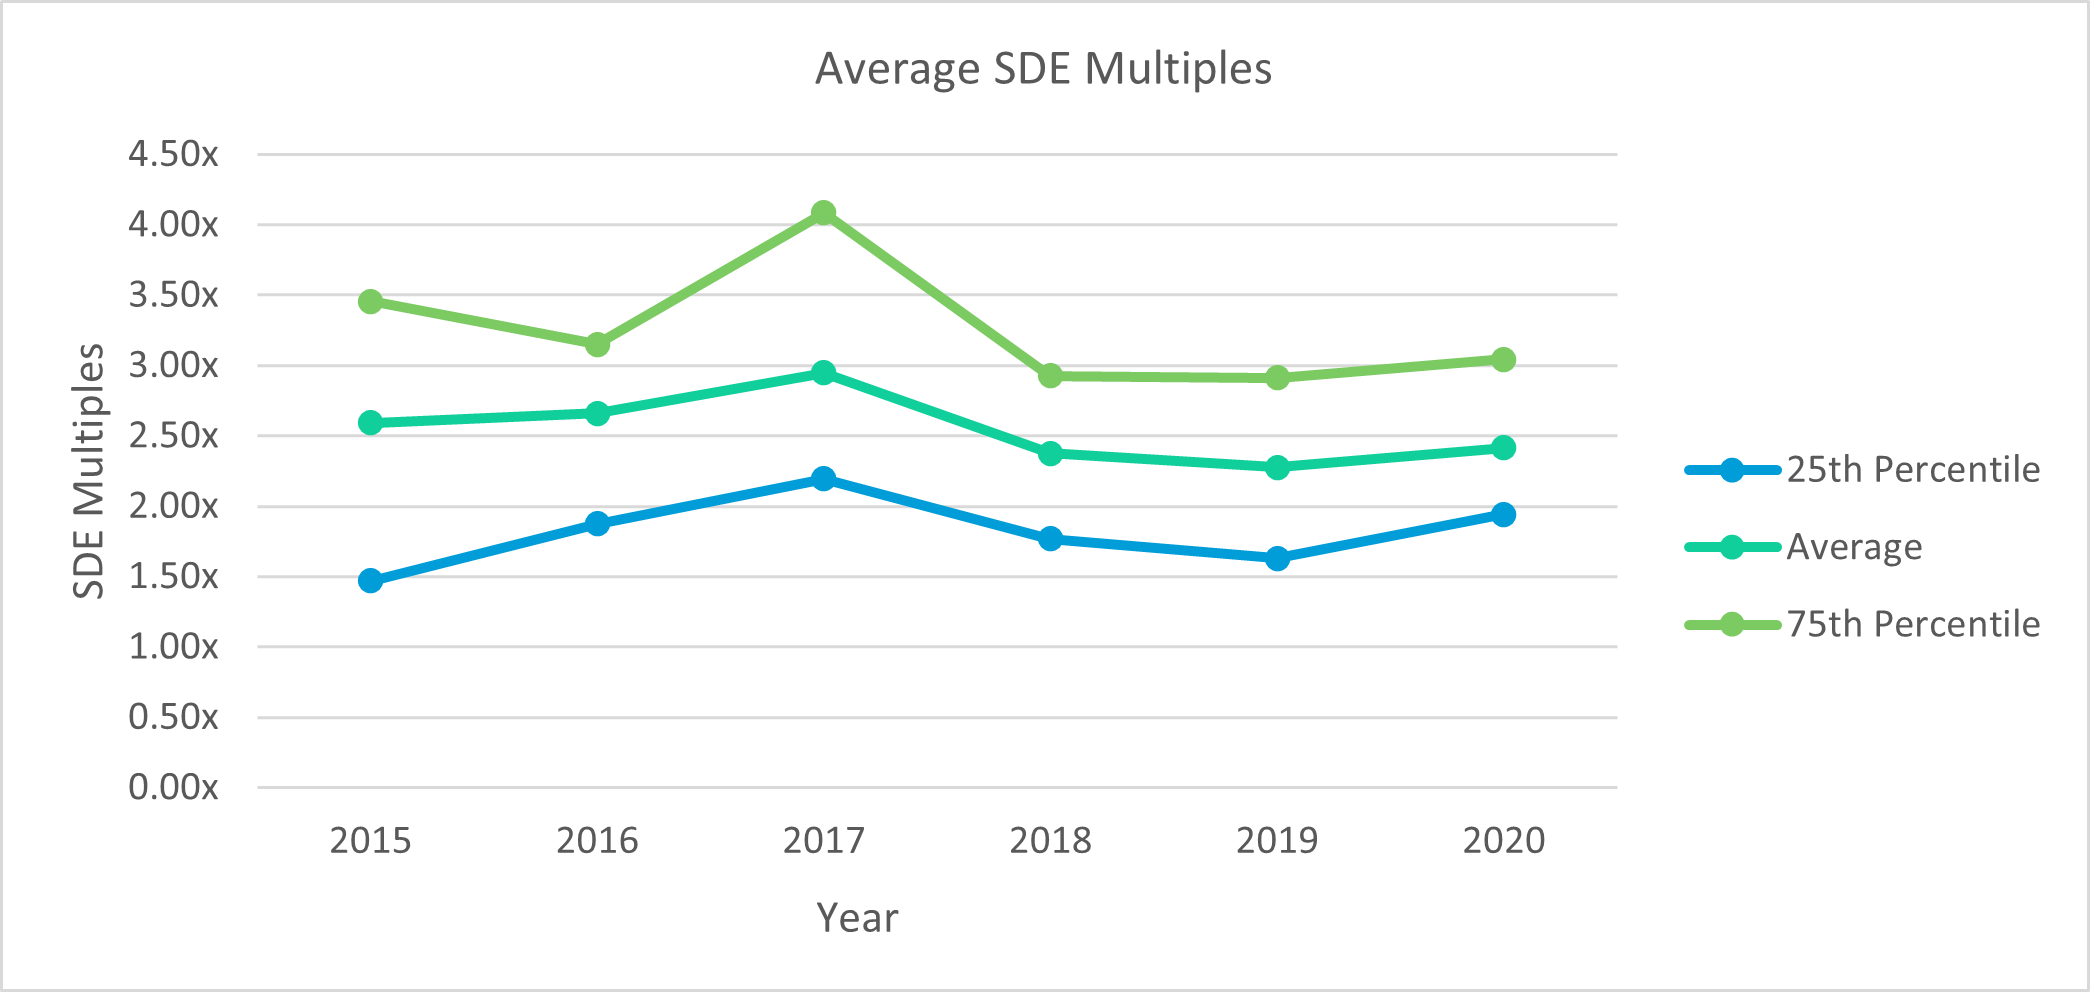 Physical Therapy SDE Multiples By Year